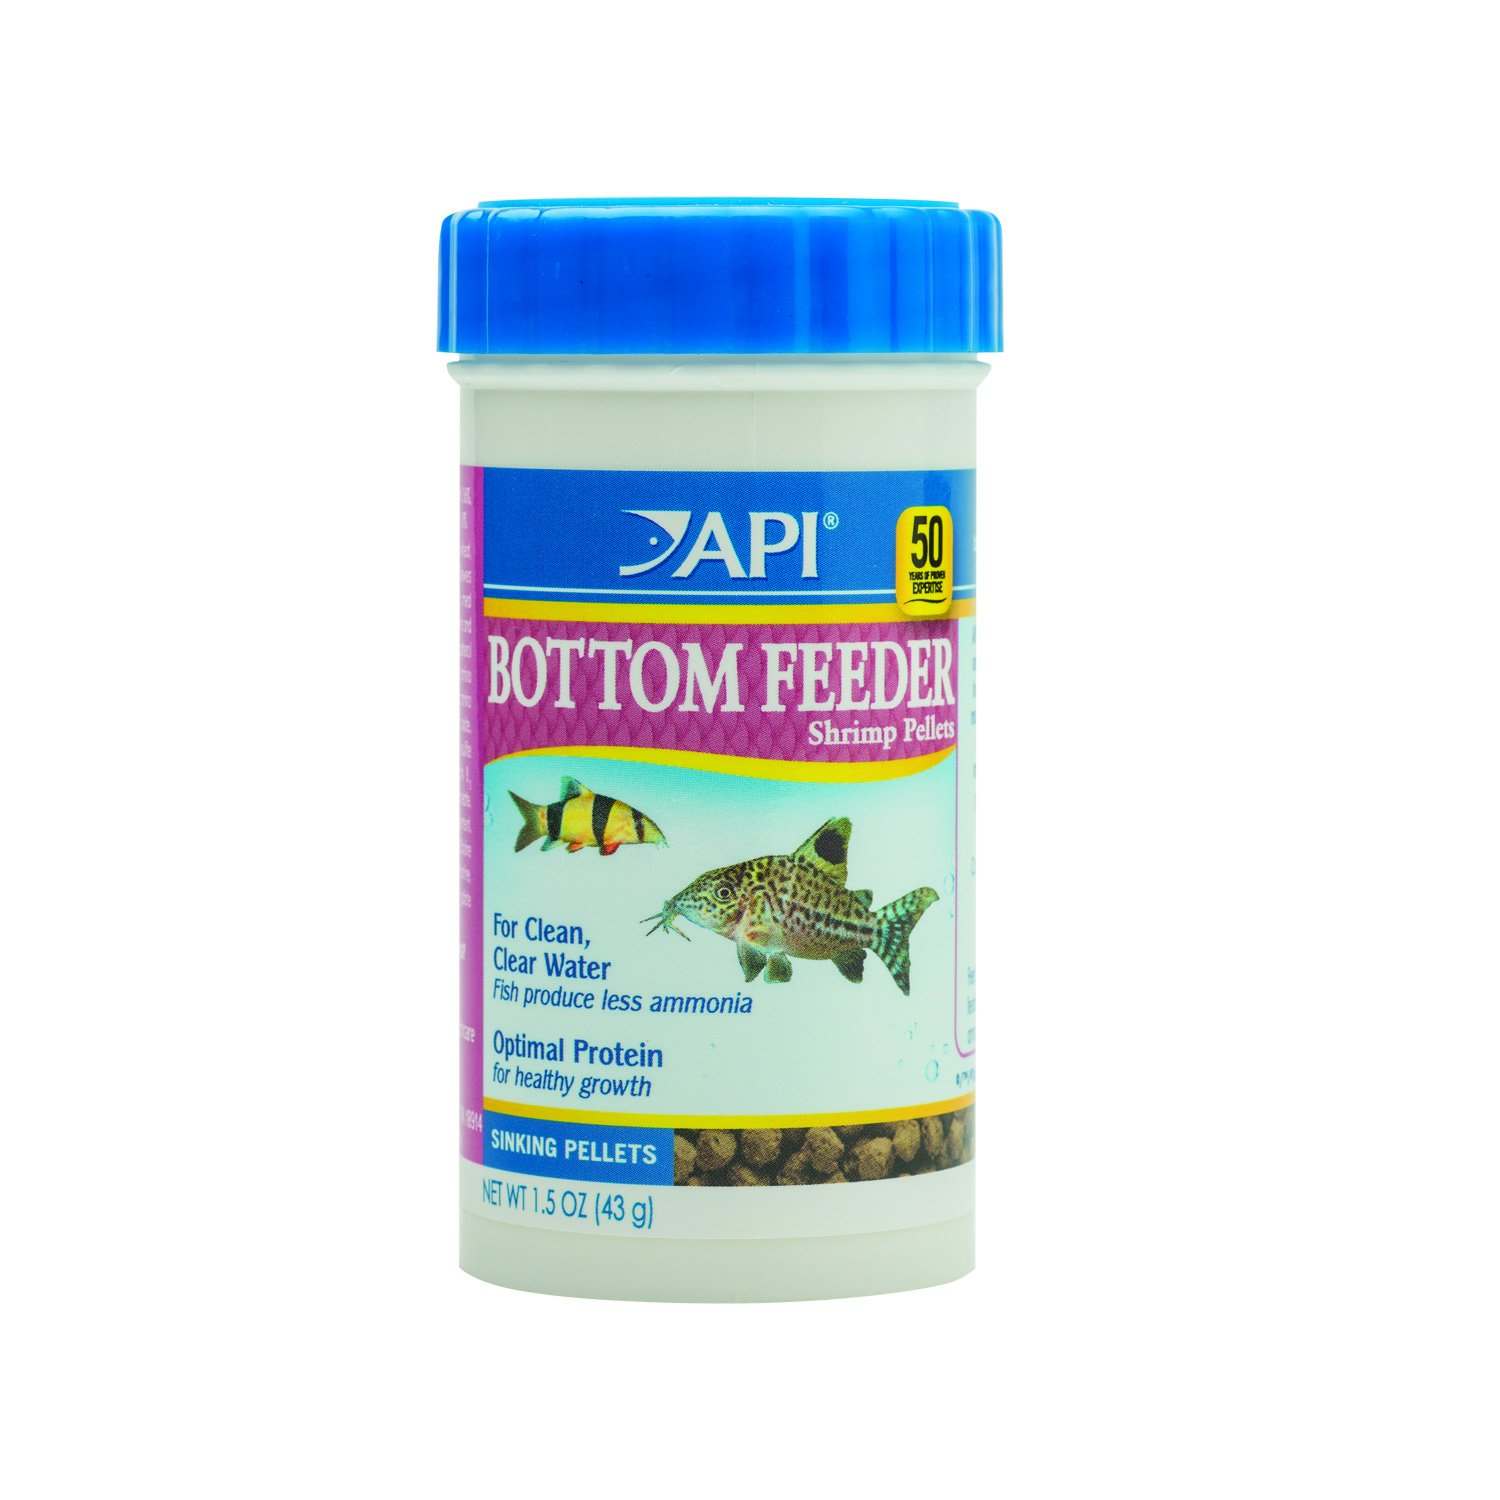 API Bottom Feeder Shrimp Pellets Fish Food 7.9 oz Container API Fishcare 841C